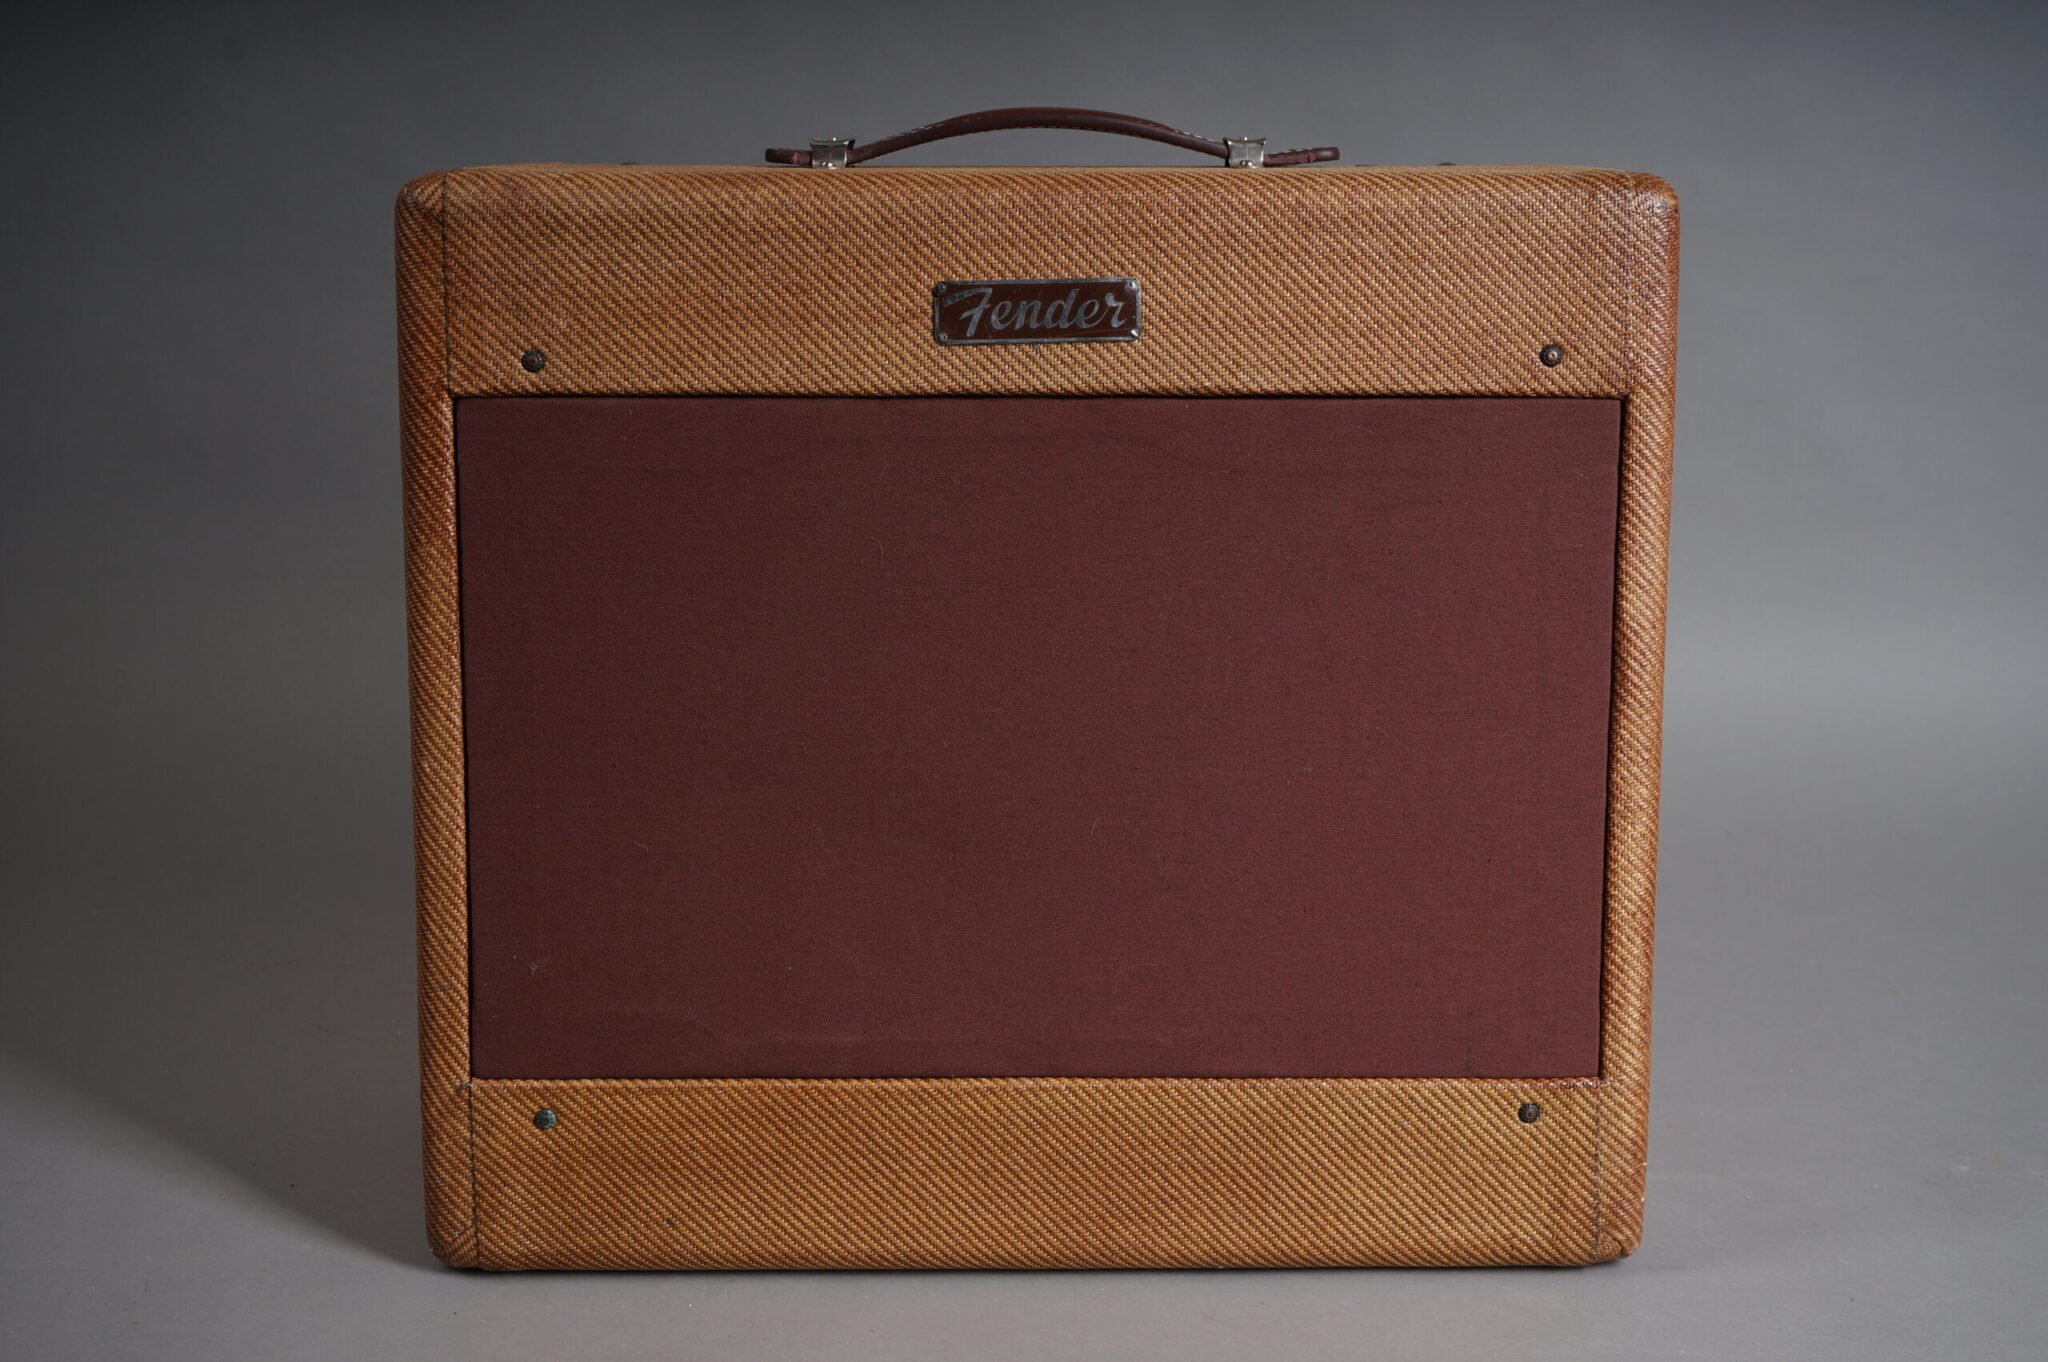 https://guitarpoint.de/app/uploads/products/1955-fender-deluxe-5d3-amp-tweed/DSC08408-scaled-2048x1362.jpg